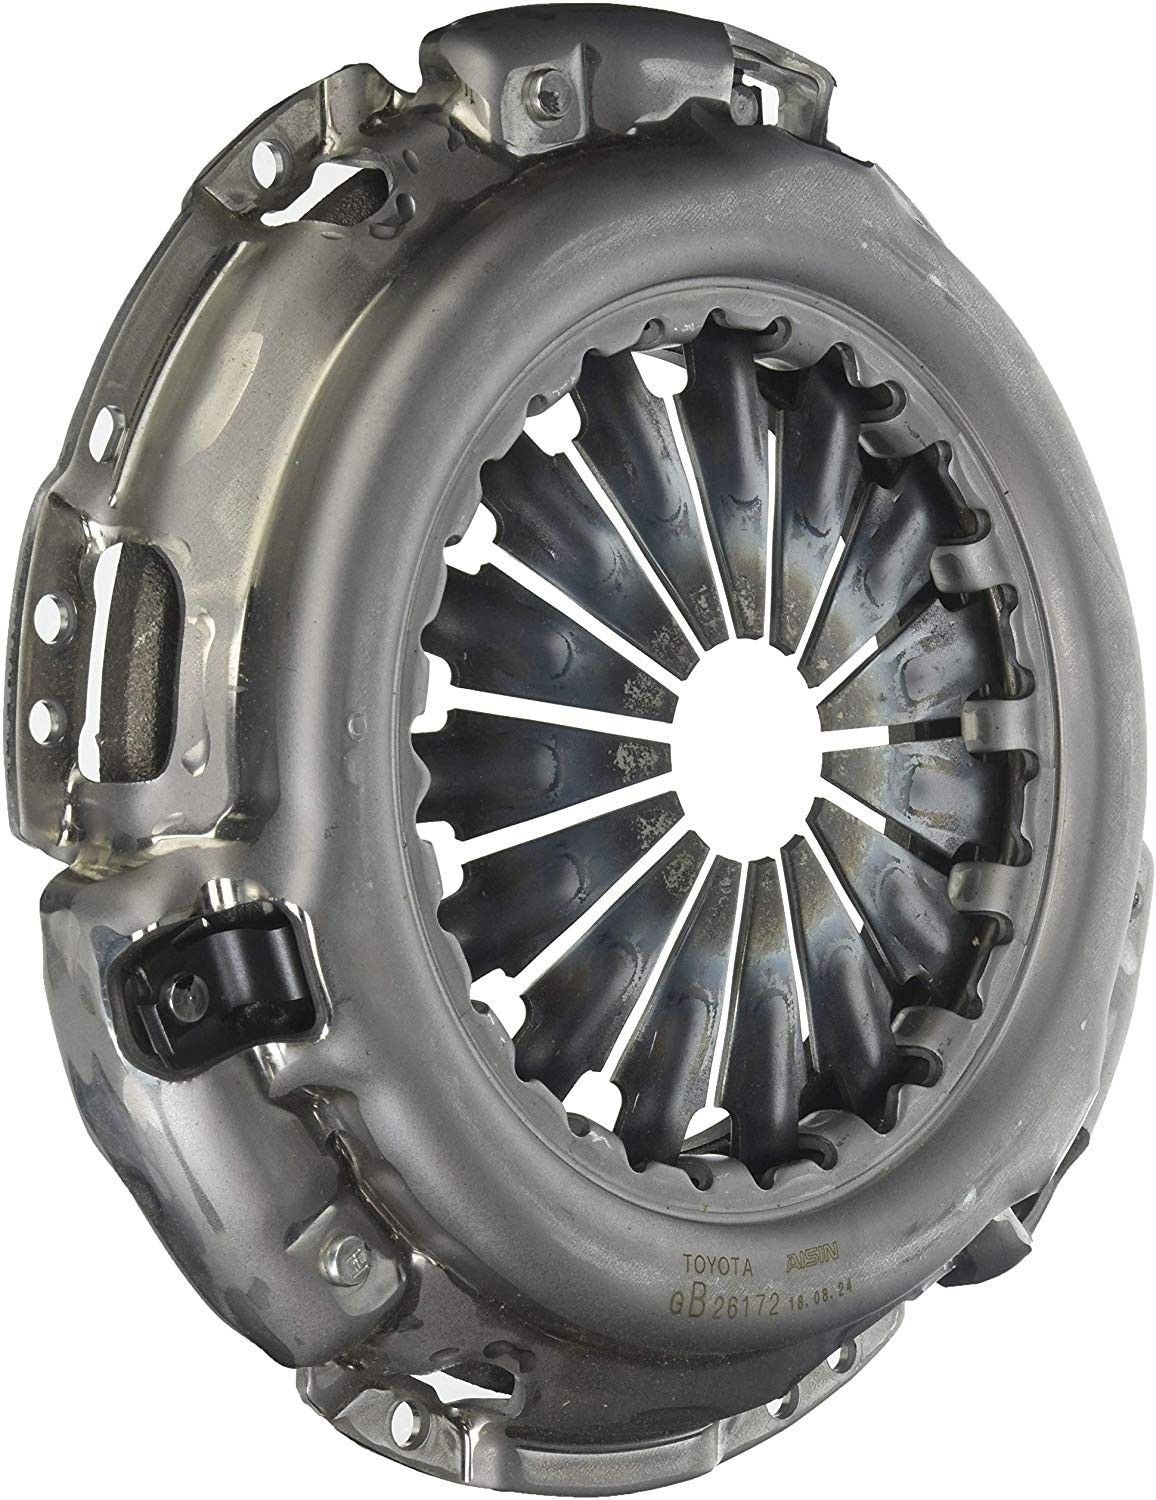 Luk Clutch Pressure Plate For Tractor Escorts 19m Lever Type CA 280 - 1280314100